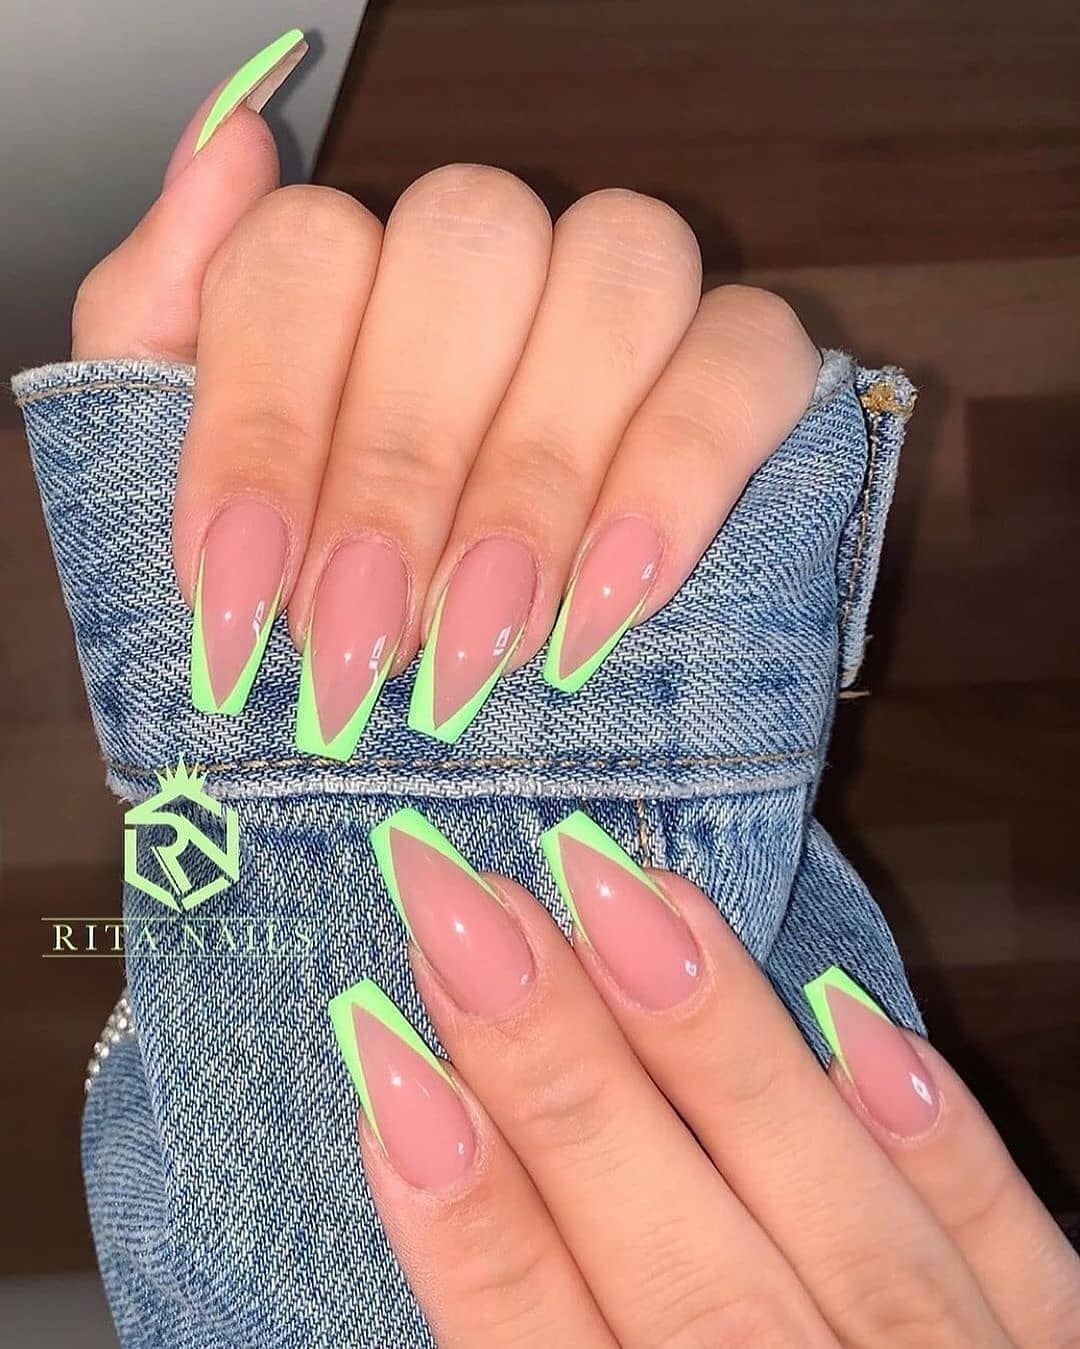 30 Best Acrylic Summer Nails Ideas To Copy Right Now In 2020 Best Acrylic Nails Pretty Acrylic Nails Summer Acrylic Nails